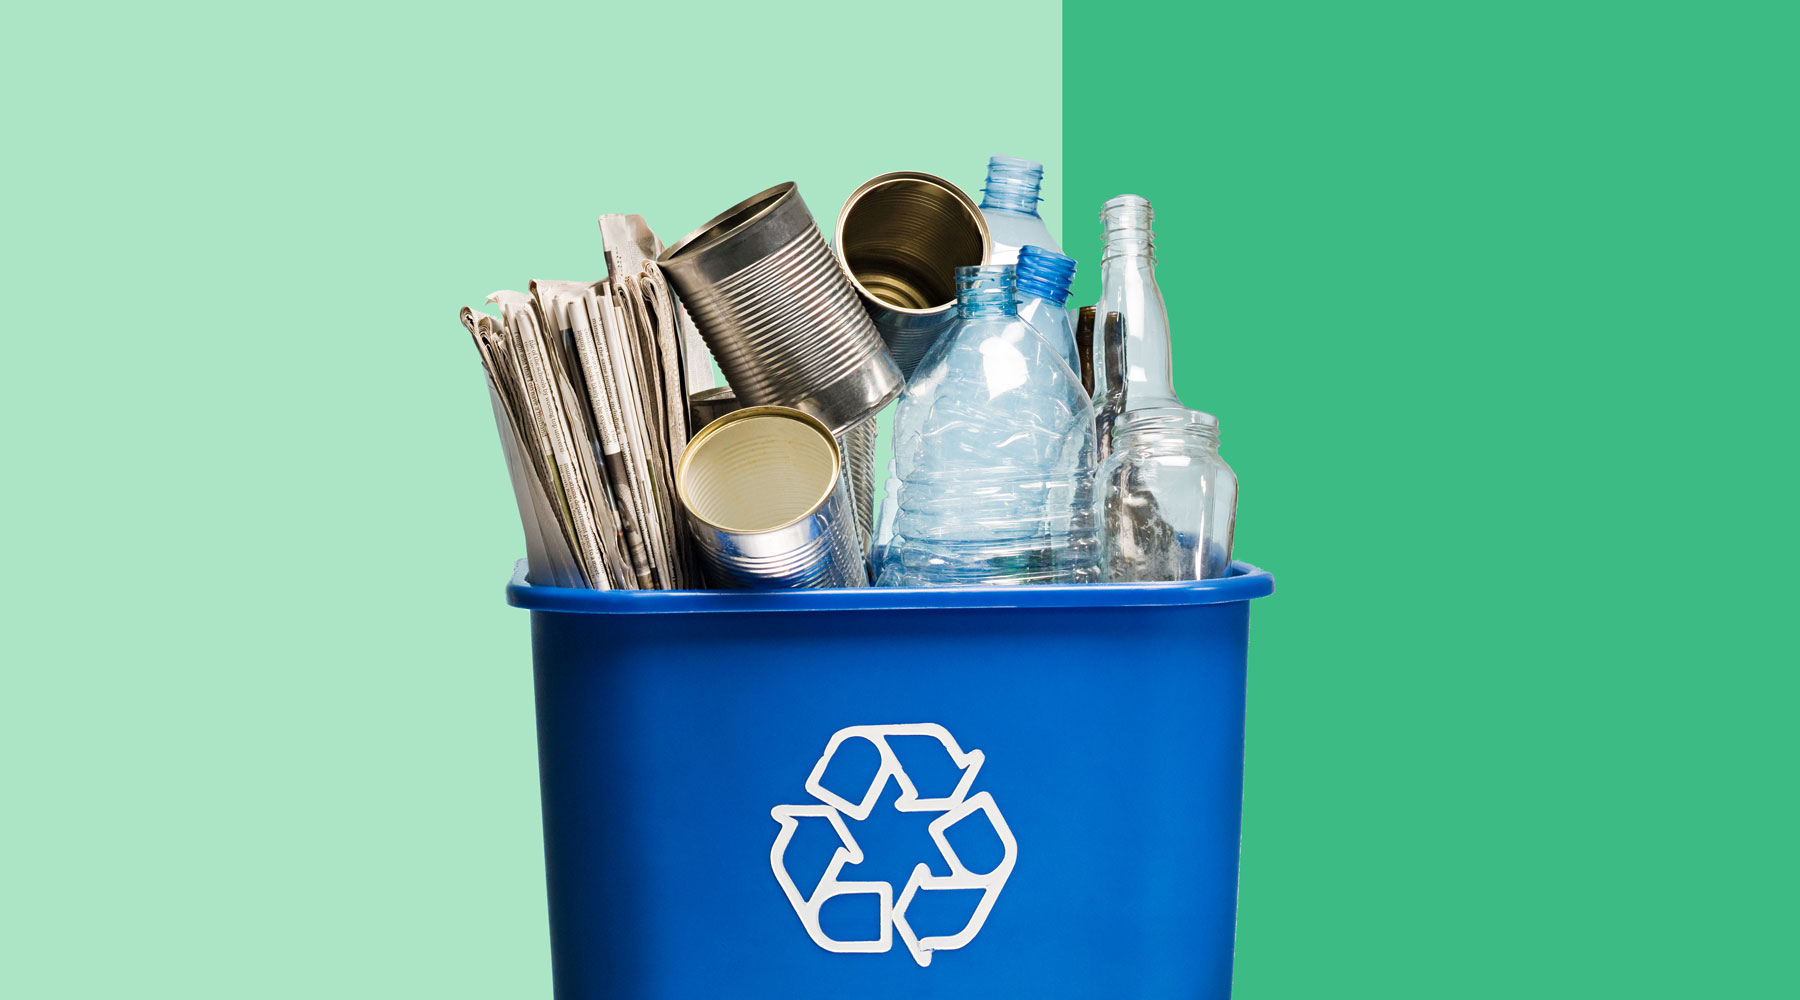 Recycling mistakes, fixes, and solutions